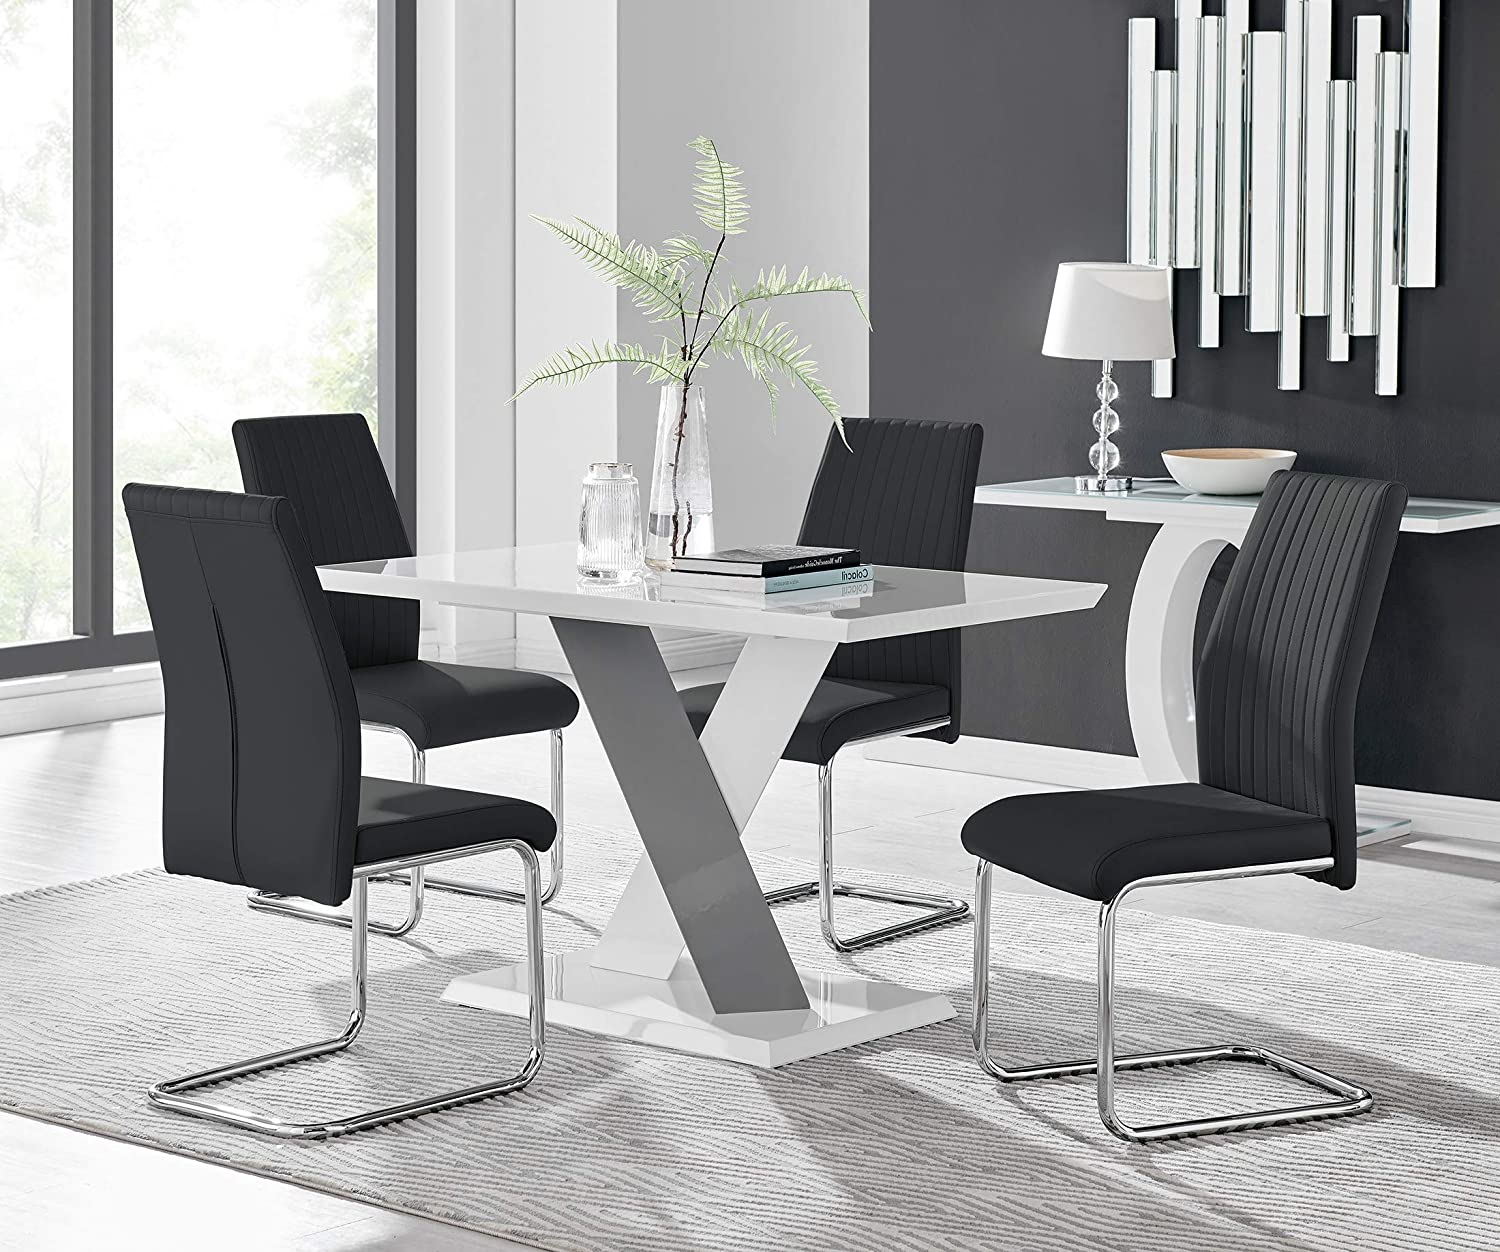 Furniturebox UK Monza 9 Seat White and Grey High Gloss Rectangular Dining  Table Modern Contemporary Table Design with 9 Black Lorenzo Faux Leather ...